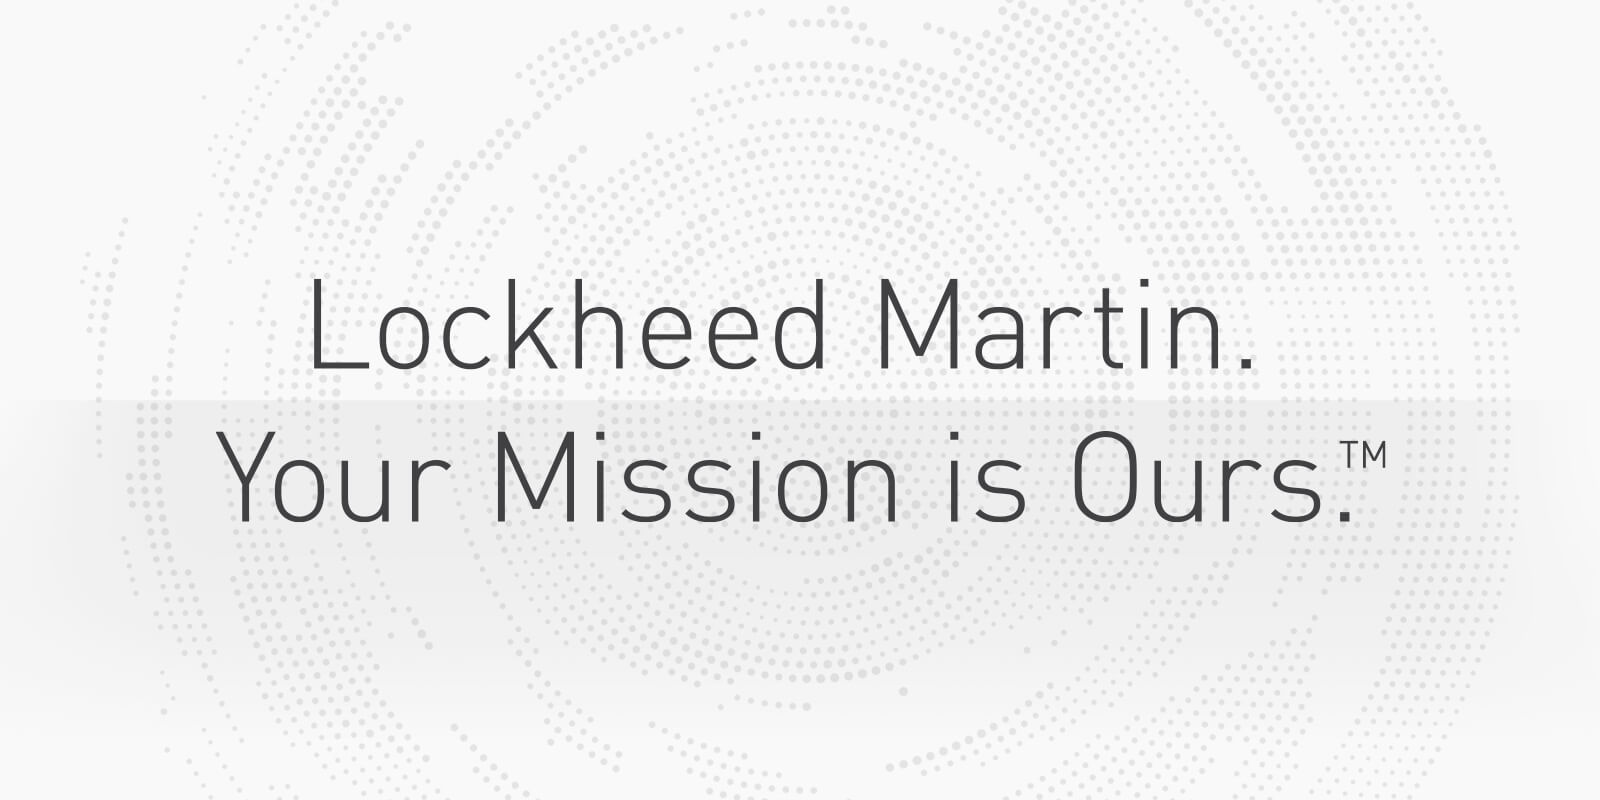 Electronics Test/ Assembly Inspector at Lockheed Martin Corporation